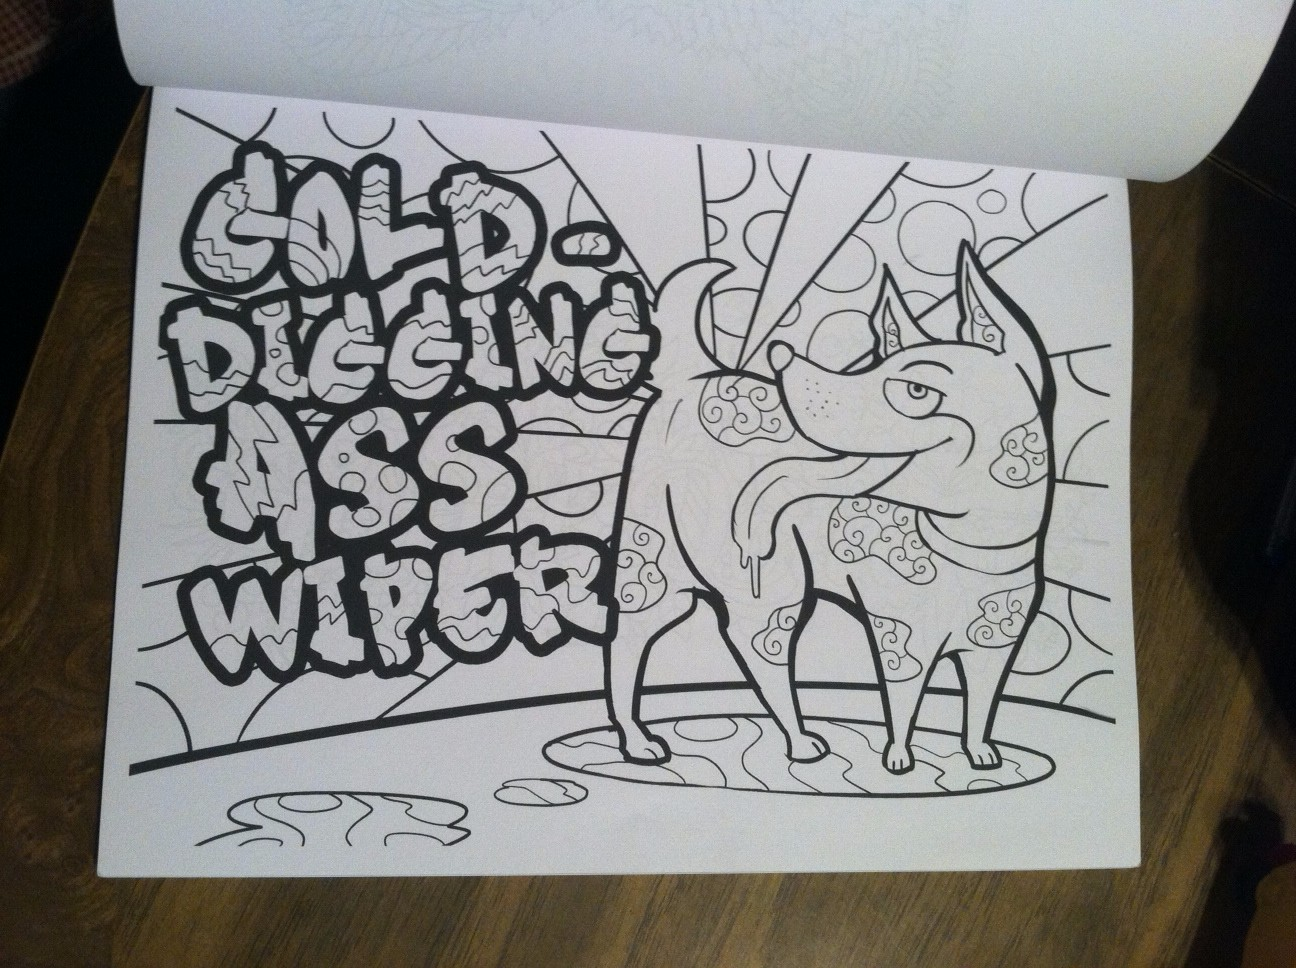 Sw swear word coloring pages etsy - Adult Curse Word Coloring Book I Needed Something To Do To Occupy My Time And